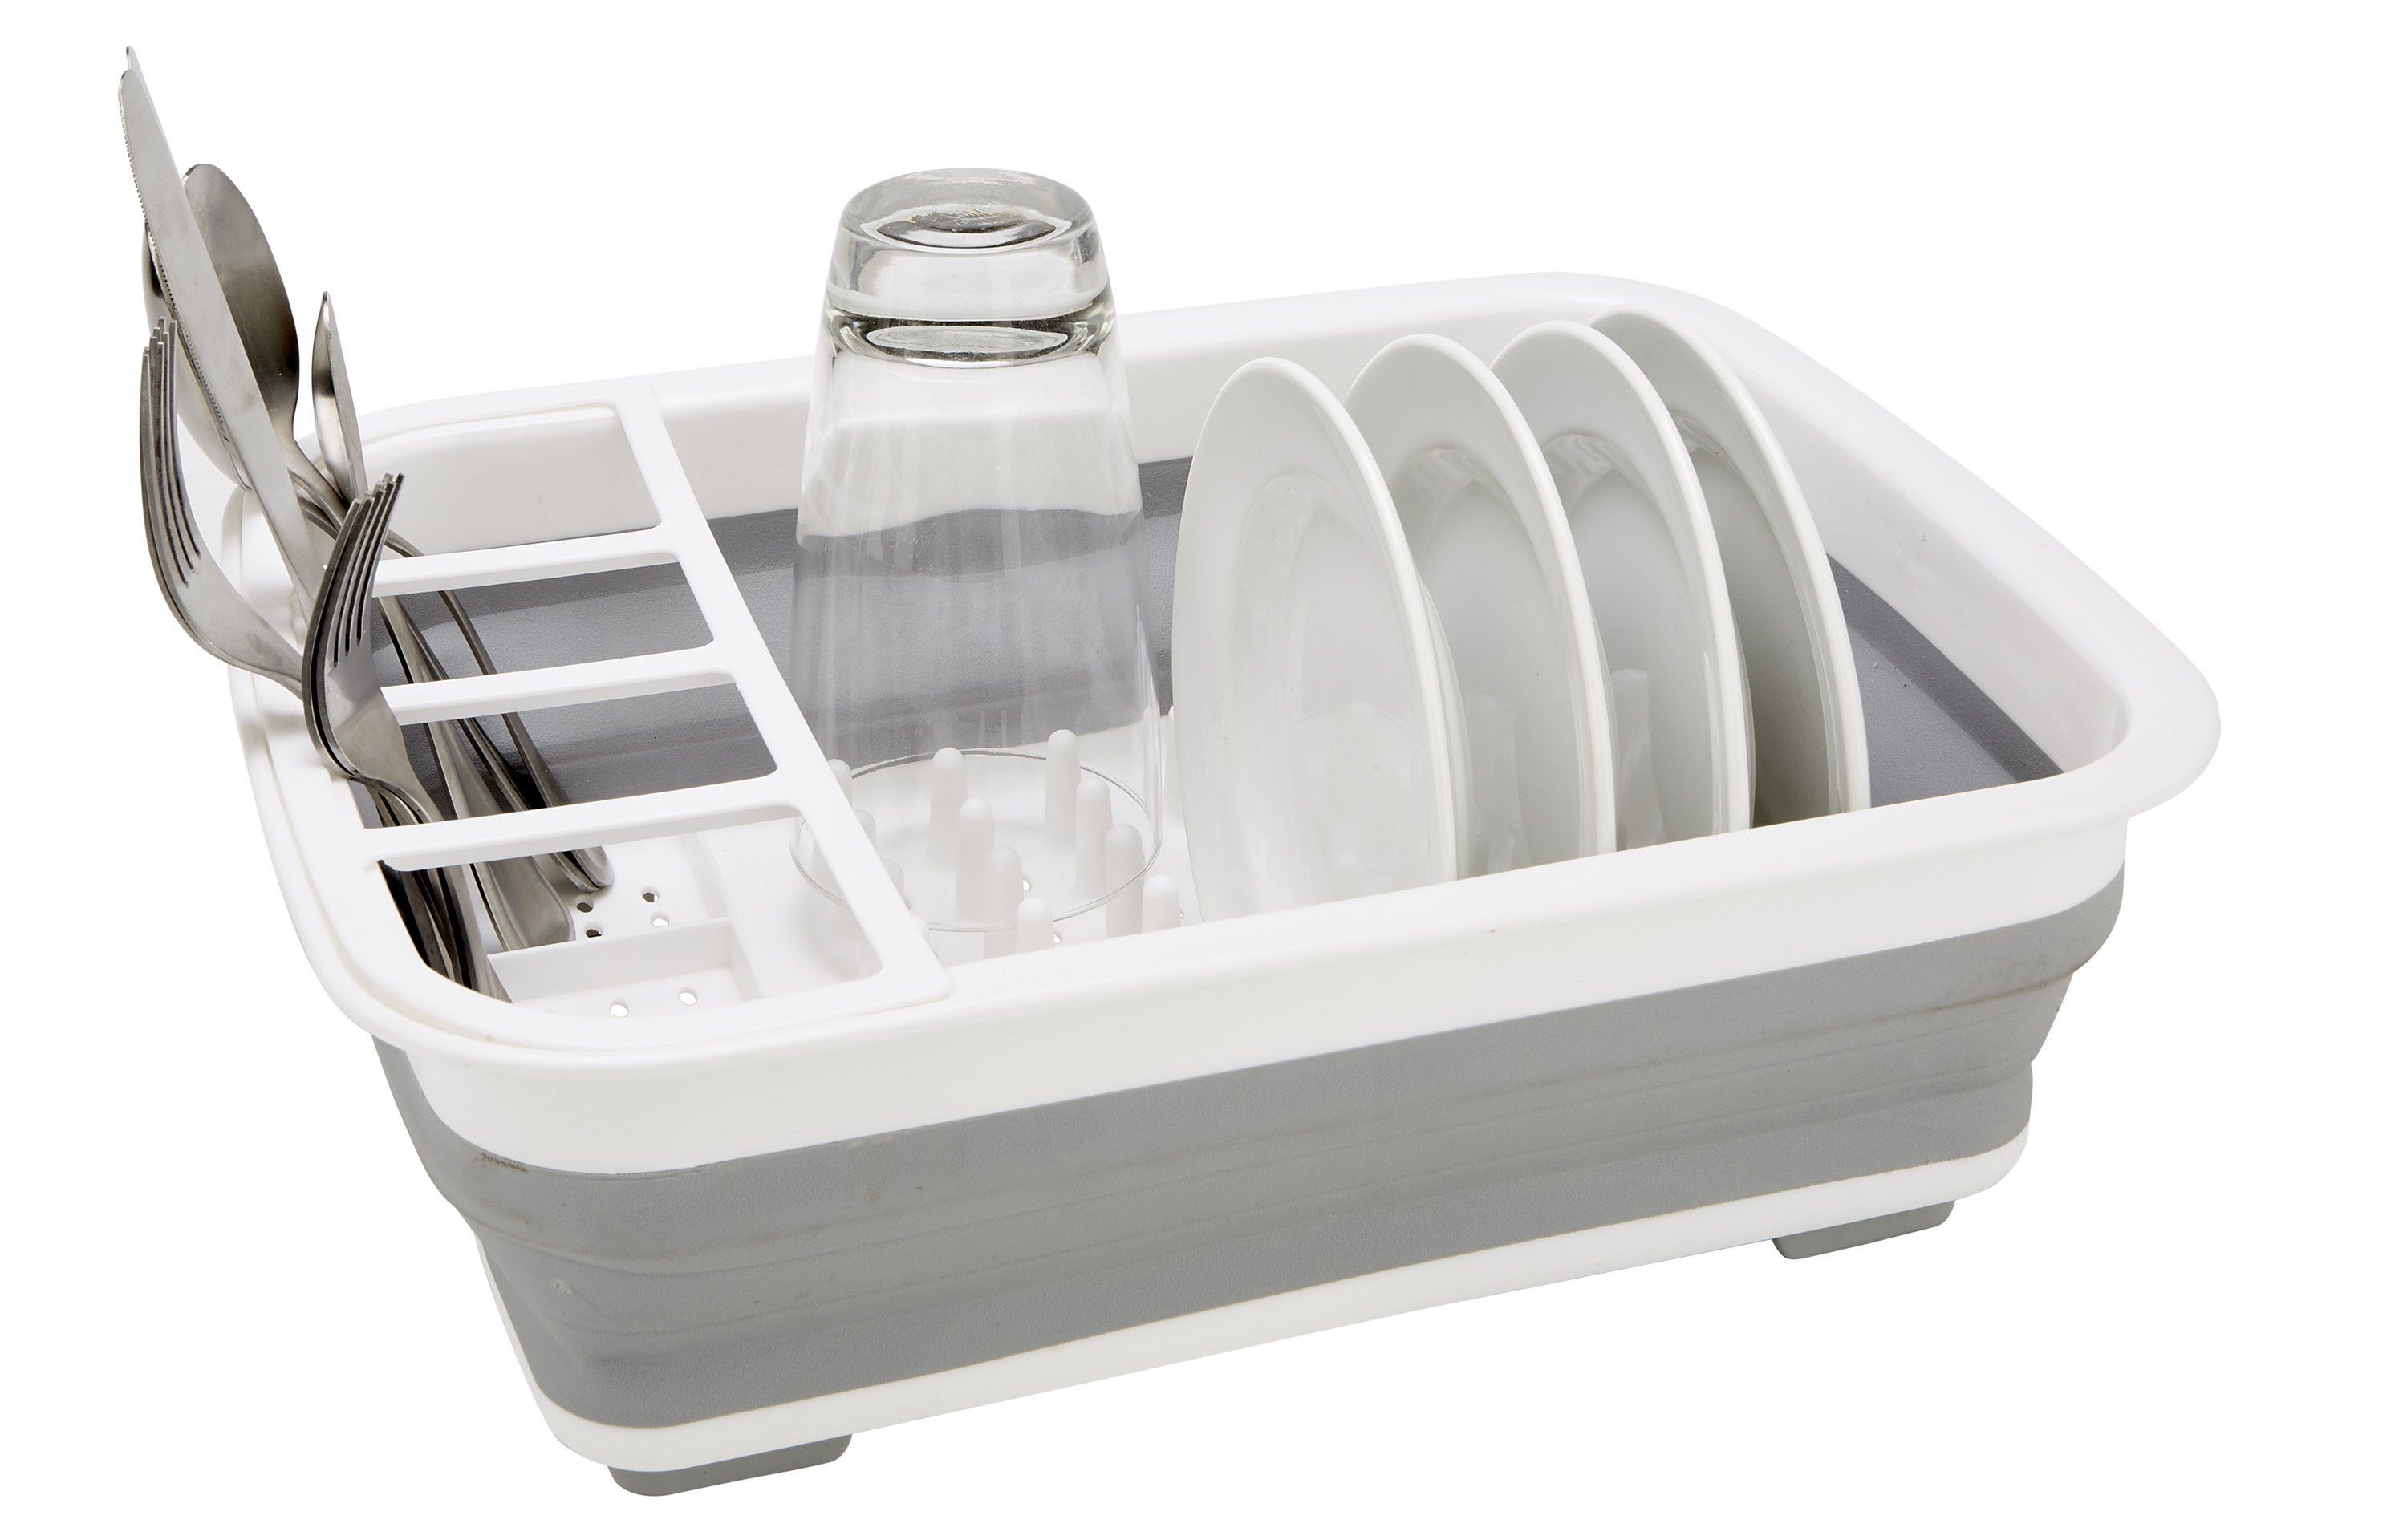 Gray and white collapsible dishrack